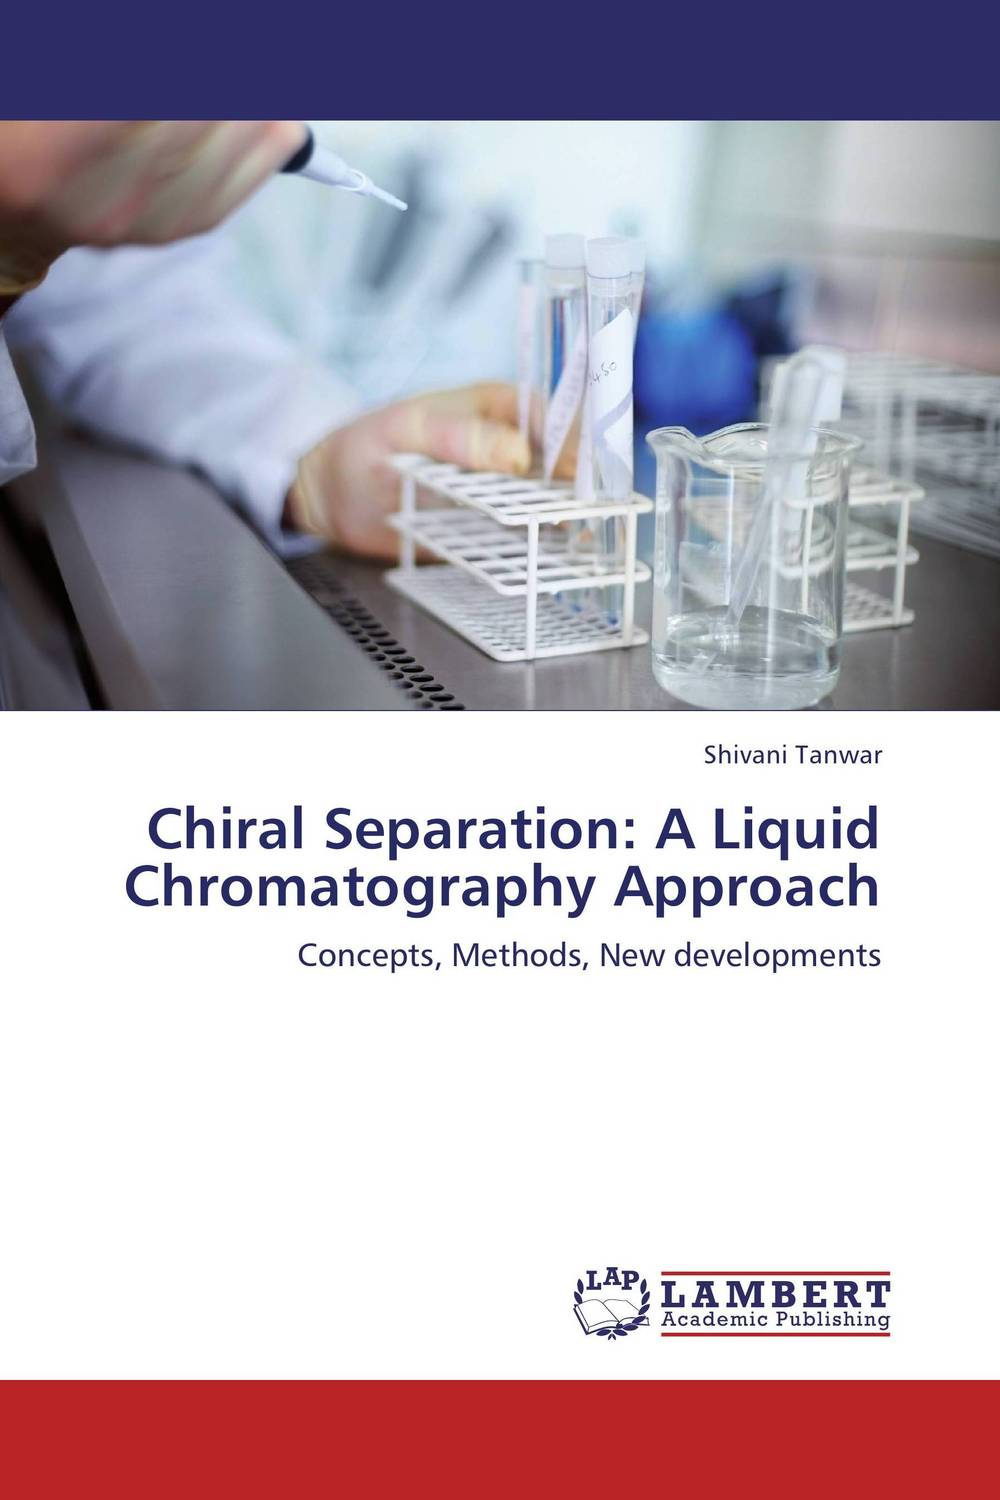 Chiral Separation: A Liquid Chromatography Approach a novel separation technique using hydrotropes